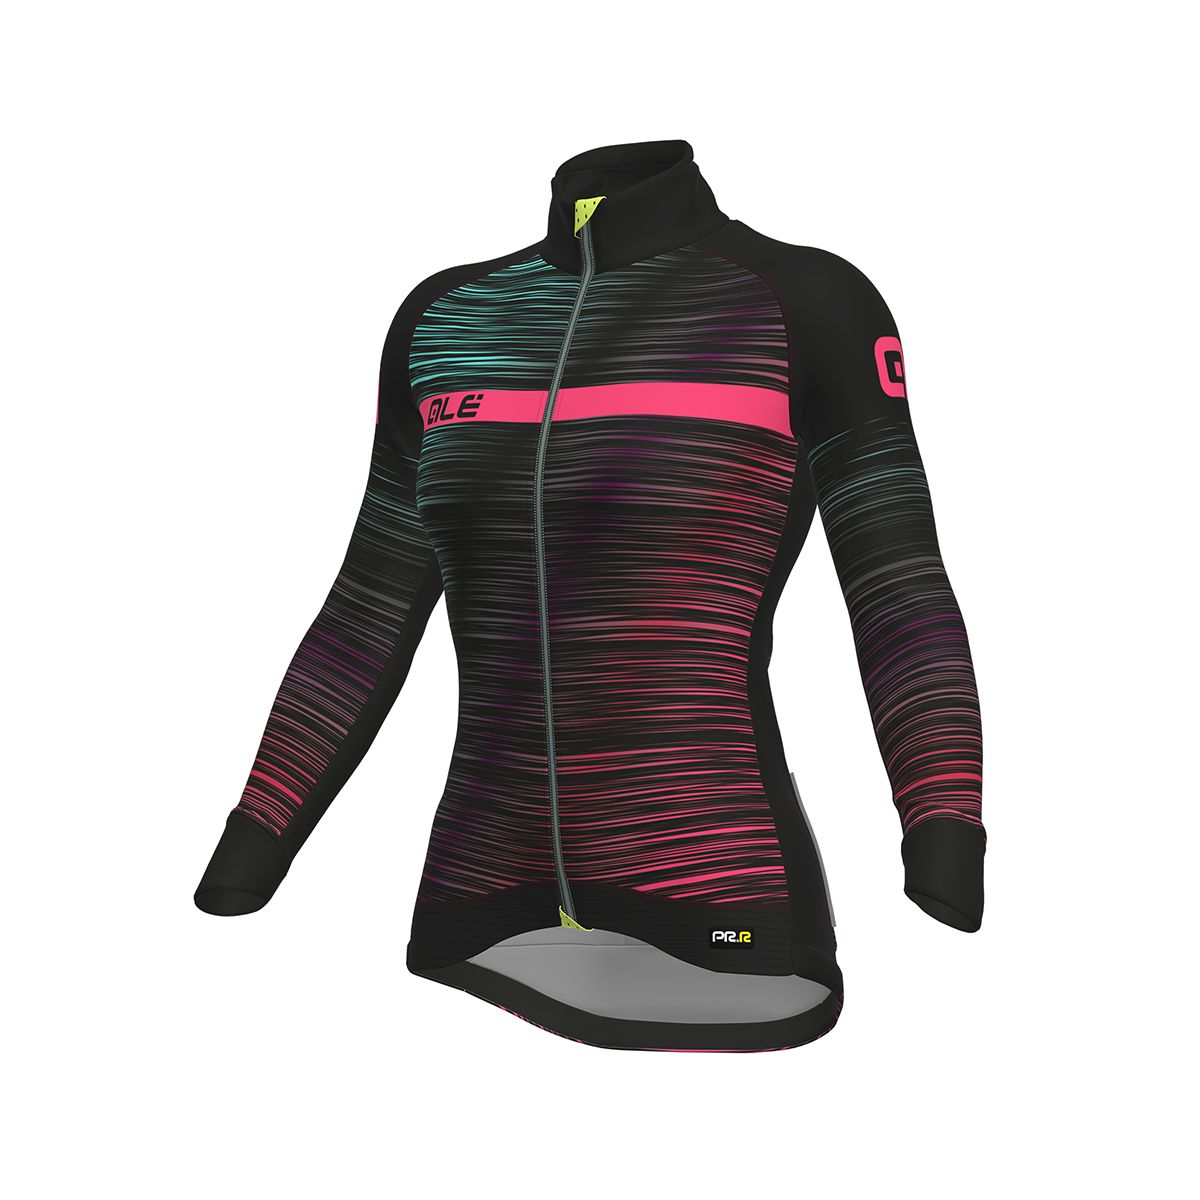 GRAPHICS PRR The End DWR Jkt women's cycling jacket